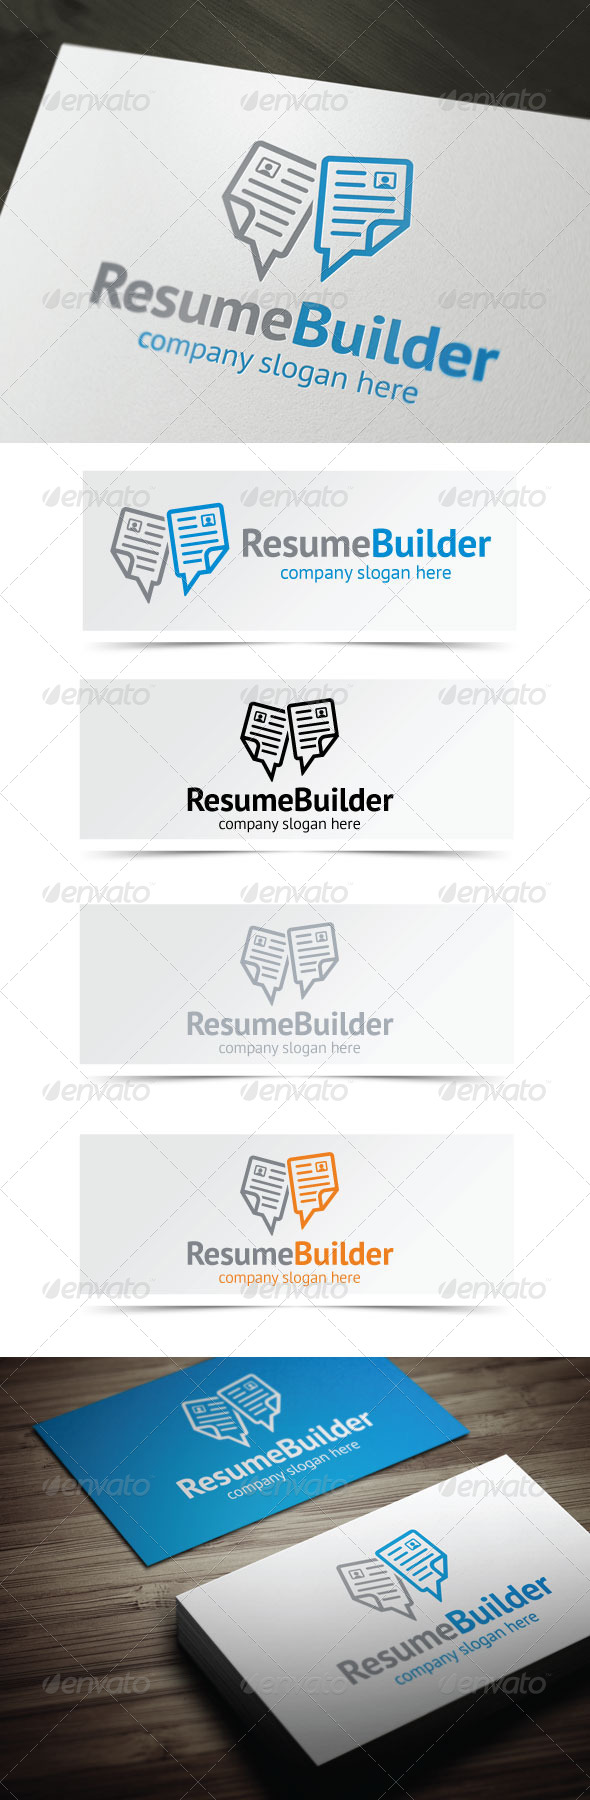 GraphicRiver Resume Builder 4342599